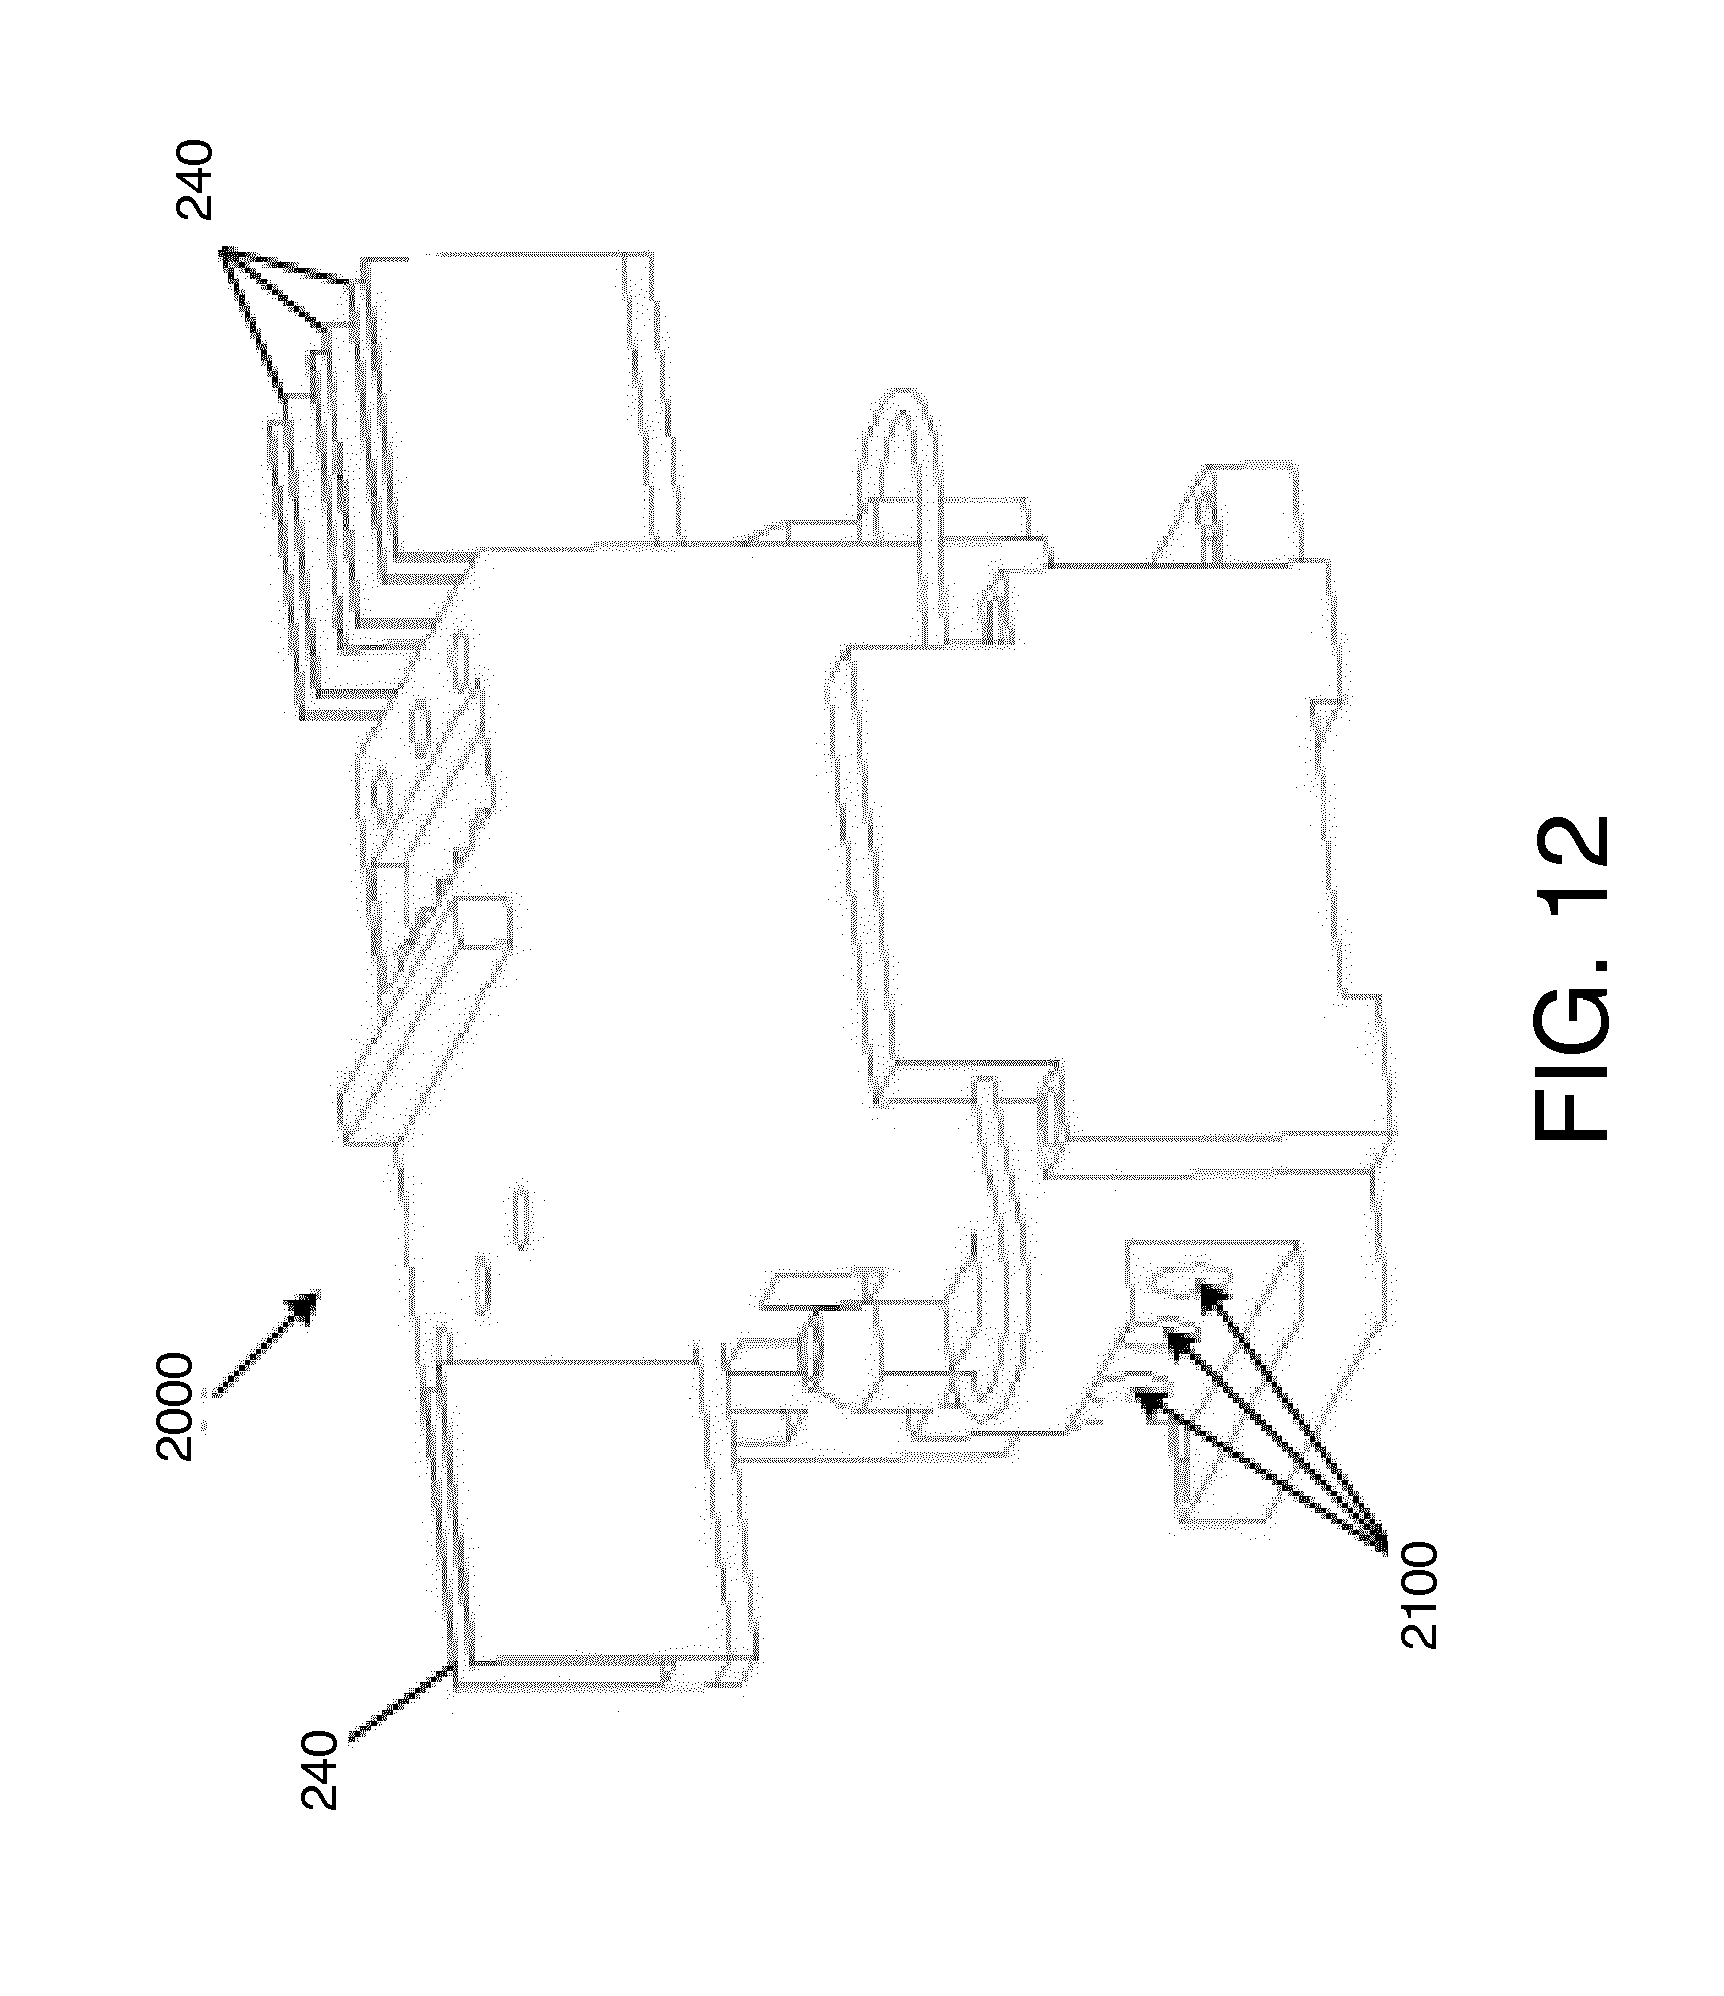 patent ep2747116a1 - three-phase ground fault circuit interrupter